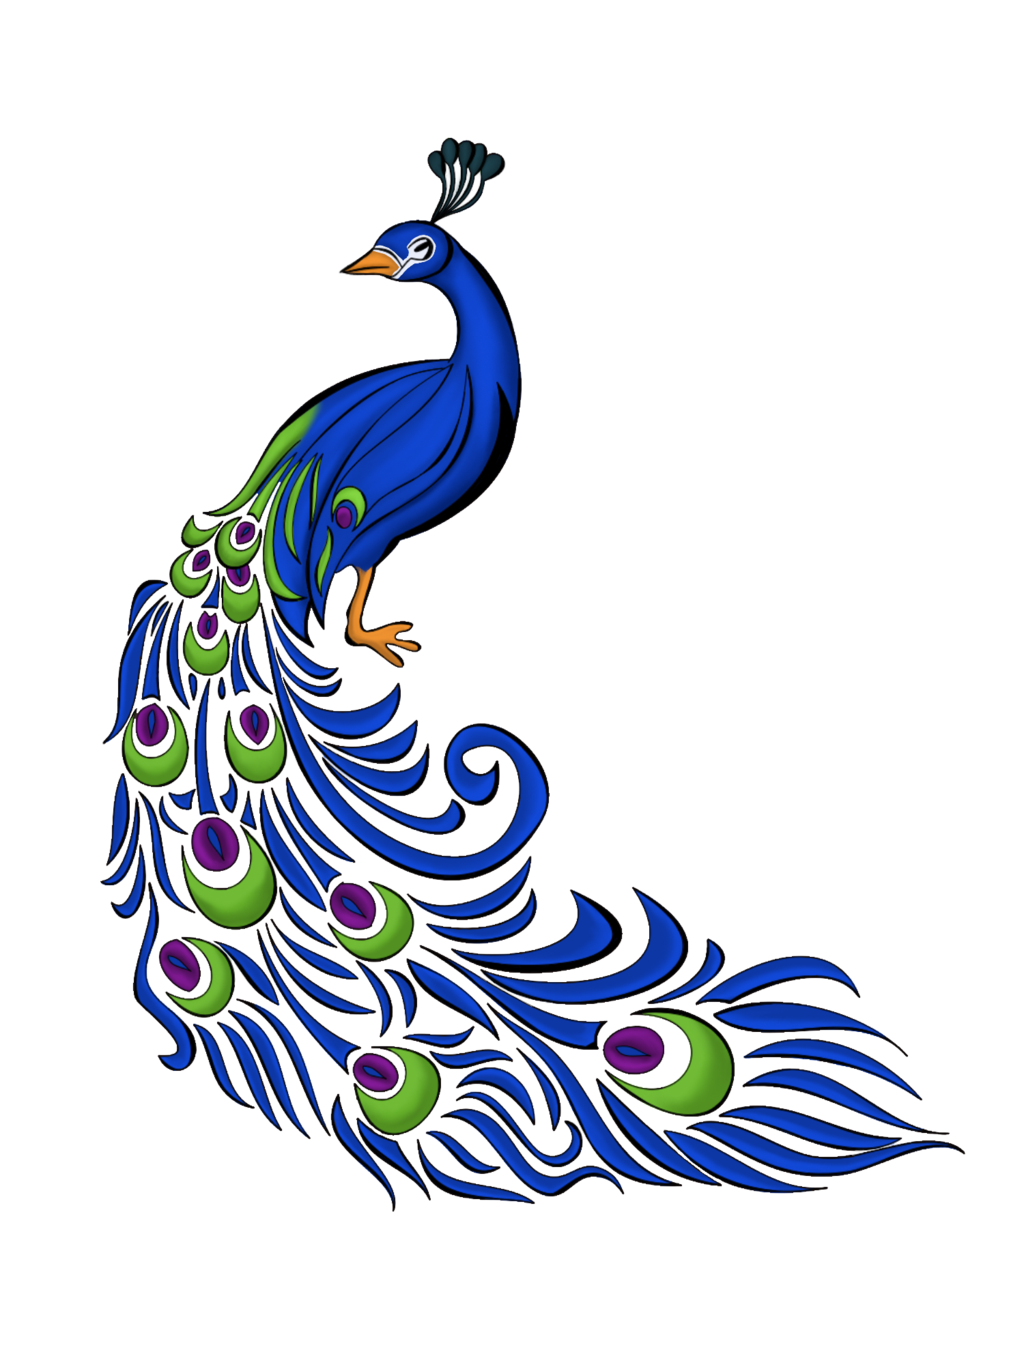 Clipart money drawn from paint graphic free Peacock Feather Vector Free Graphics And Art - JoBSPapa. | Awesome ... graphic free